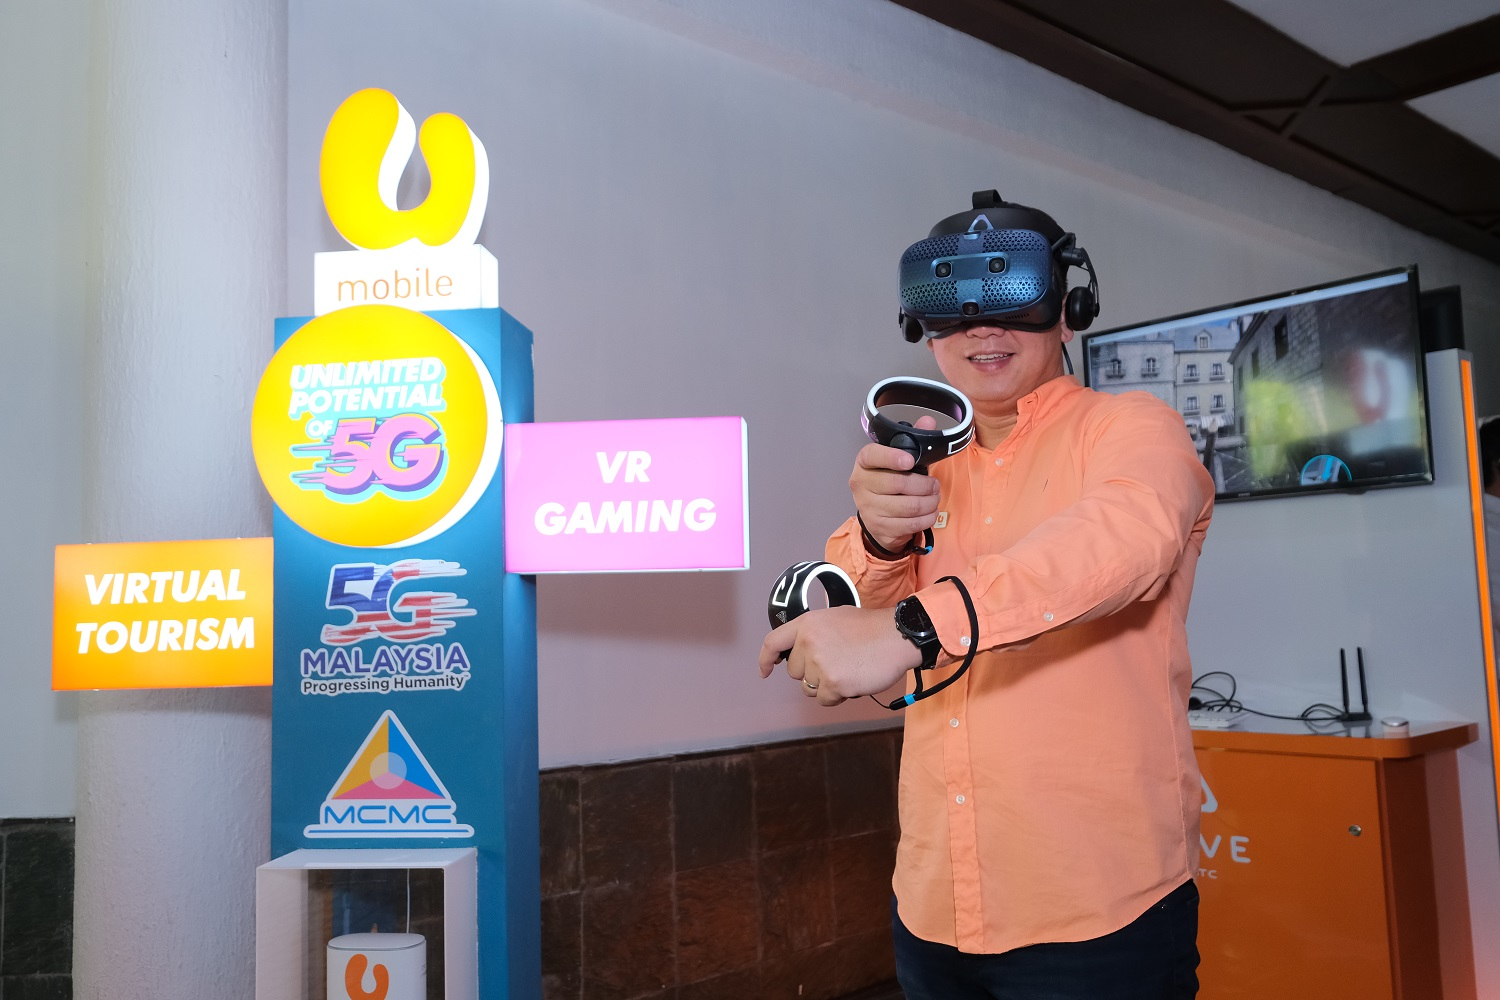 U Mobile Demonstrates 'Live' 5G Use Cases For Remote Consulation, Virtual Reality Tourism, And Virtual Reality Gaming